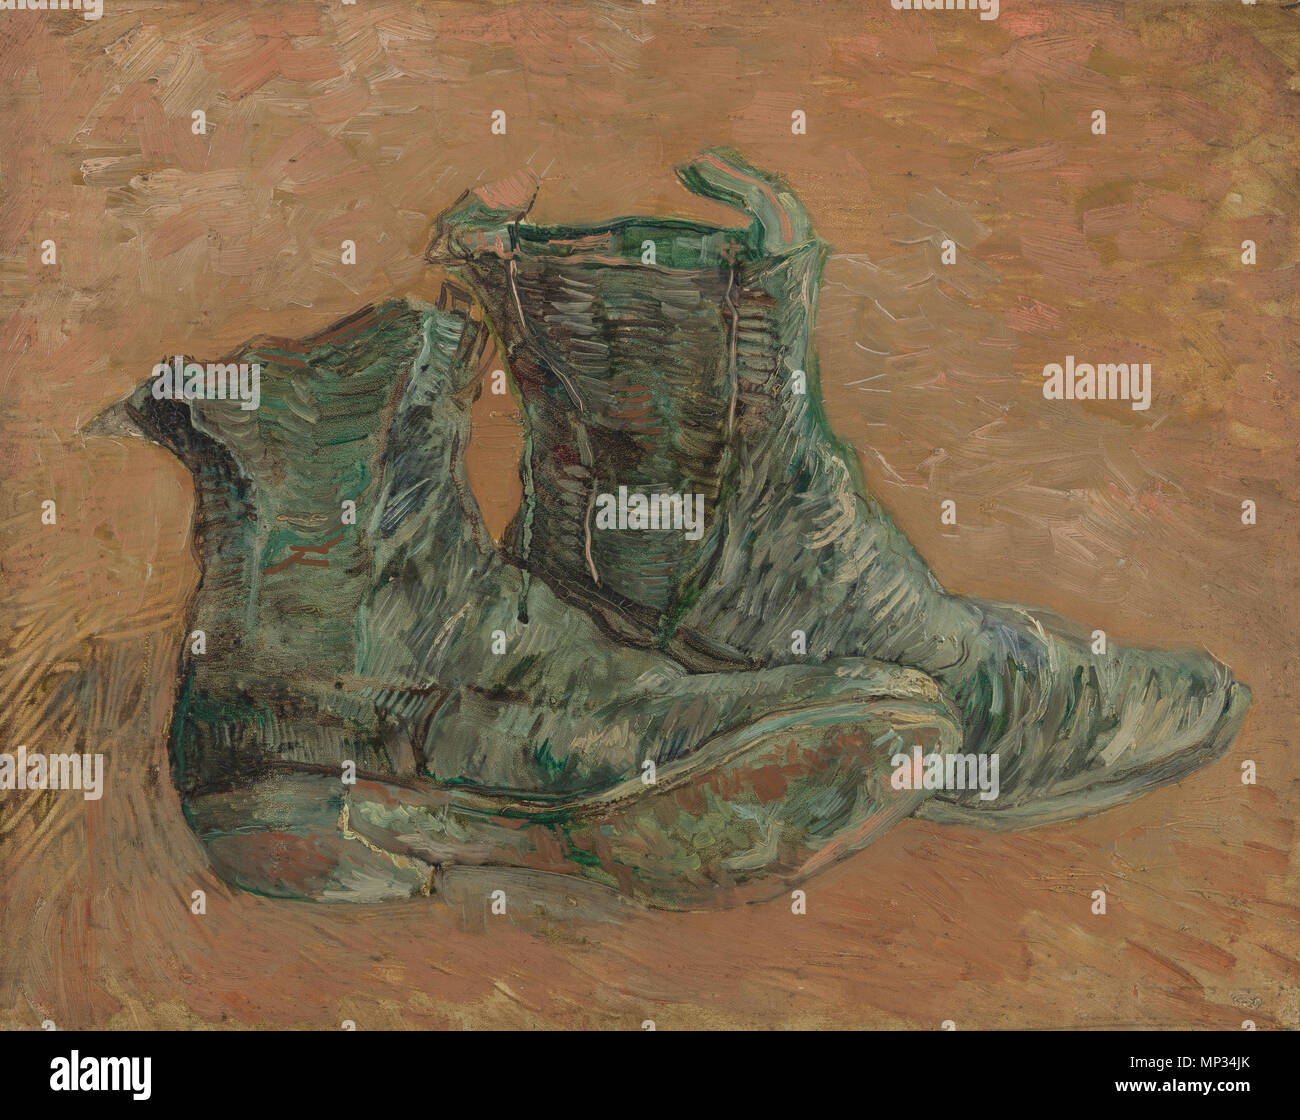 Van Fptqf1 Gogh Shoes Immagini Amp; Vincent Fotos Stock CxderBo